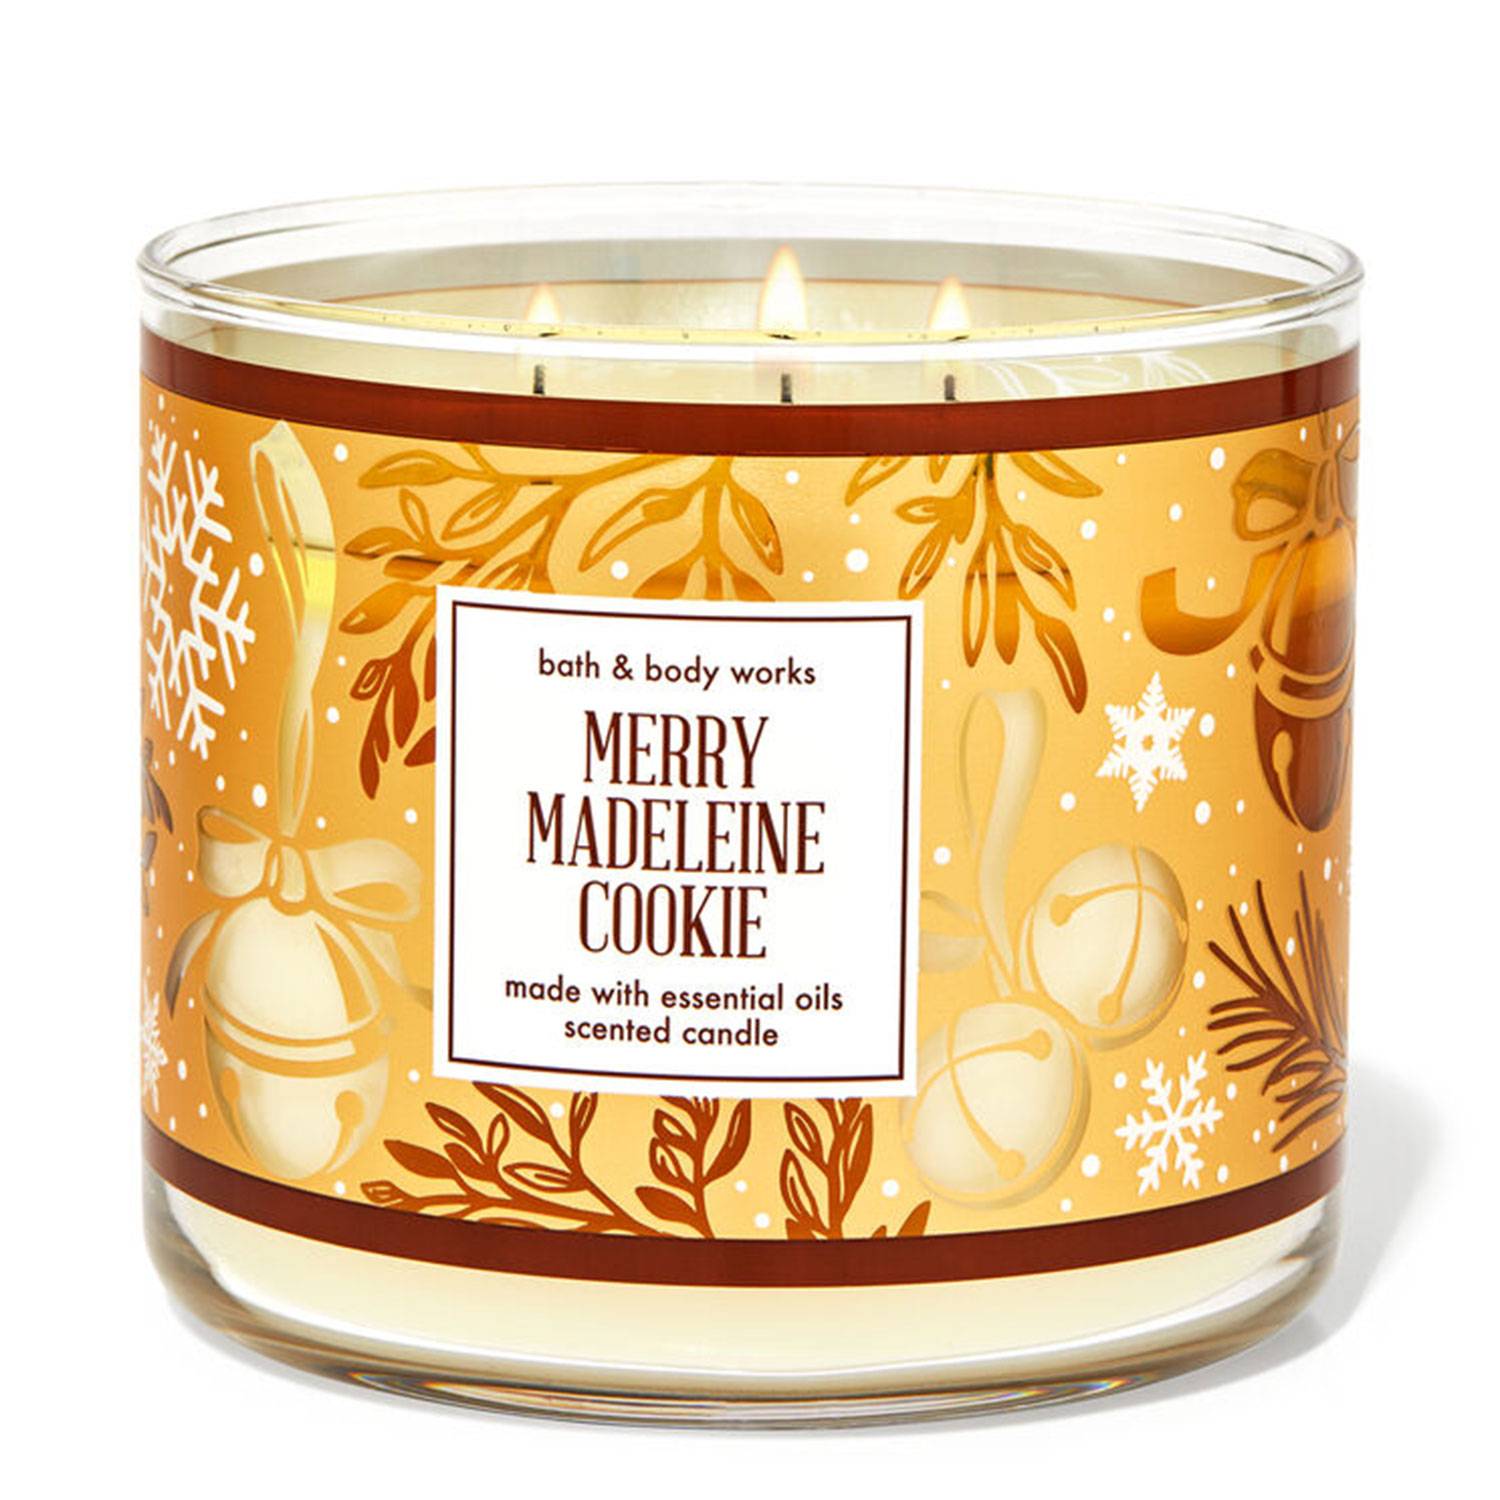 merry madeline cookie holiday candle